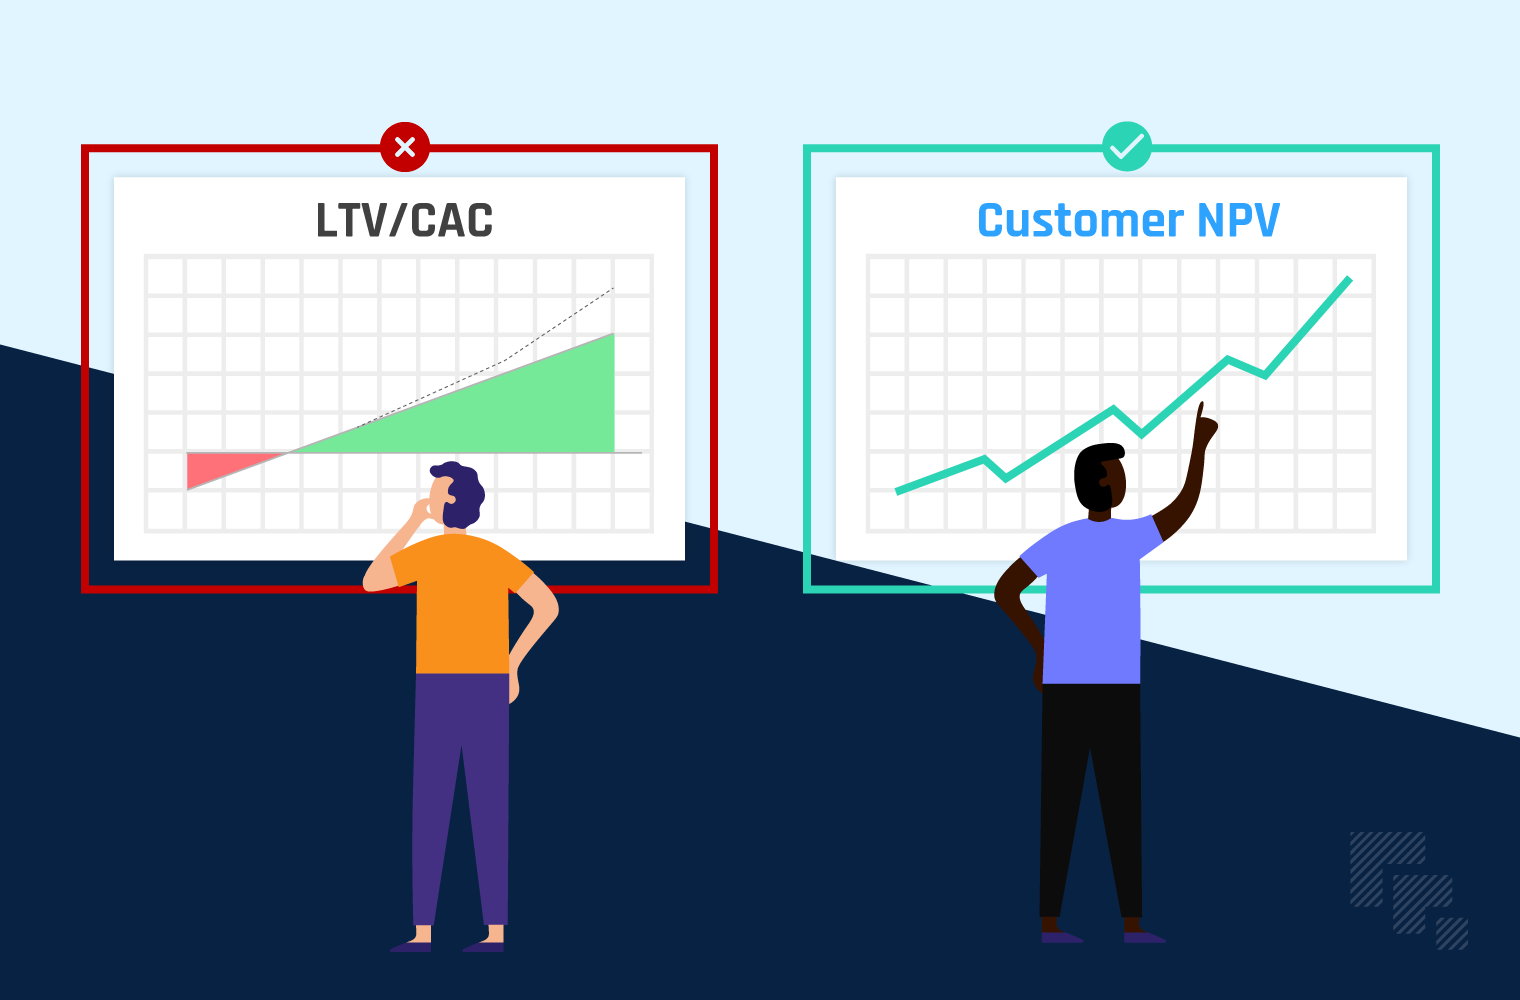 Fairest SaaS Metric - Replace LTVCAC with Customer Net Present Value